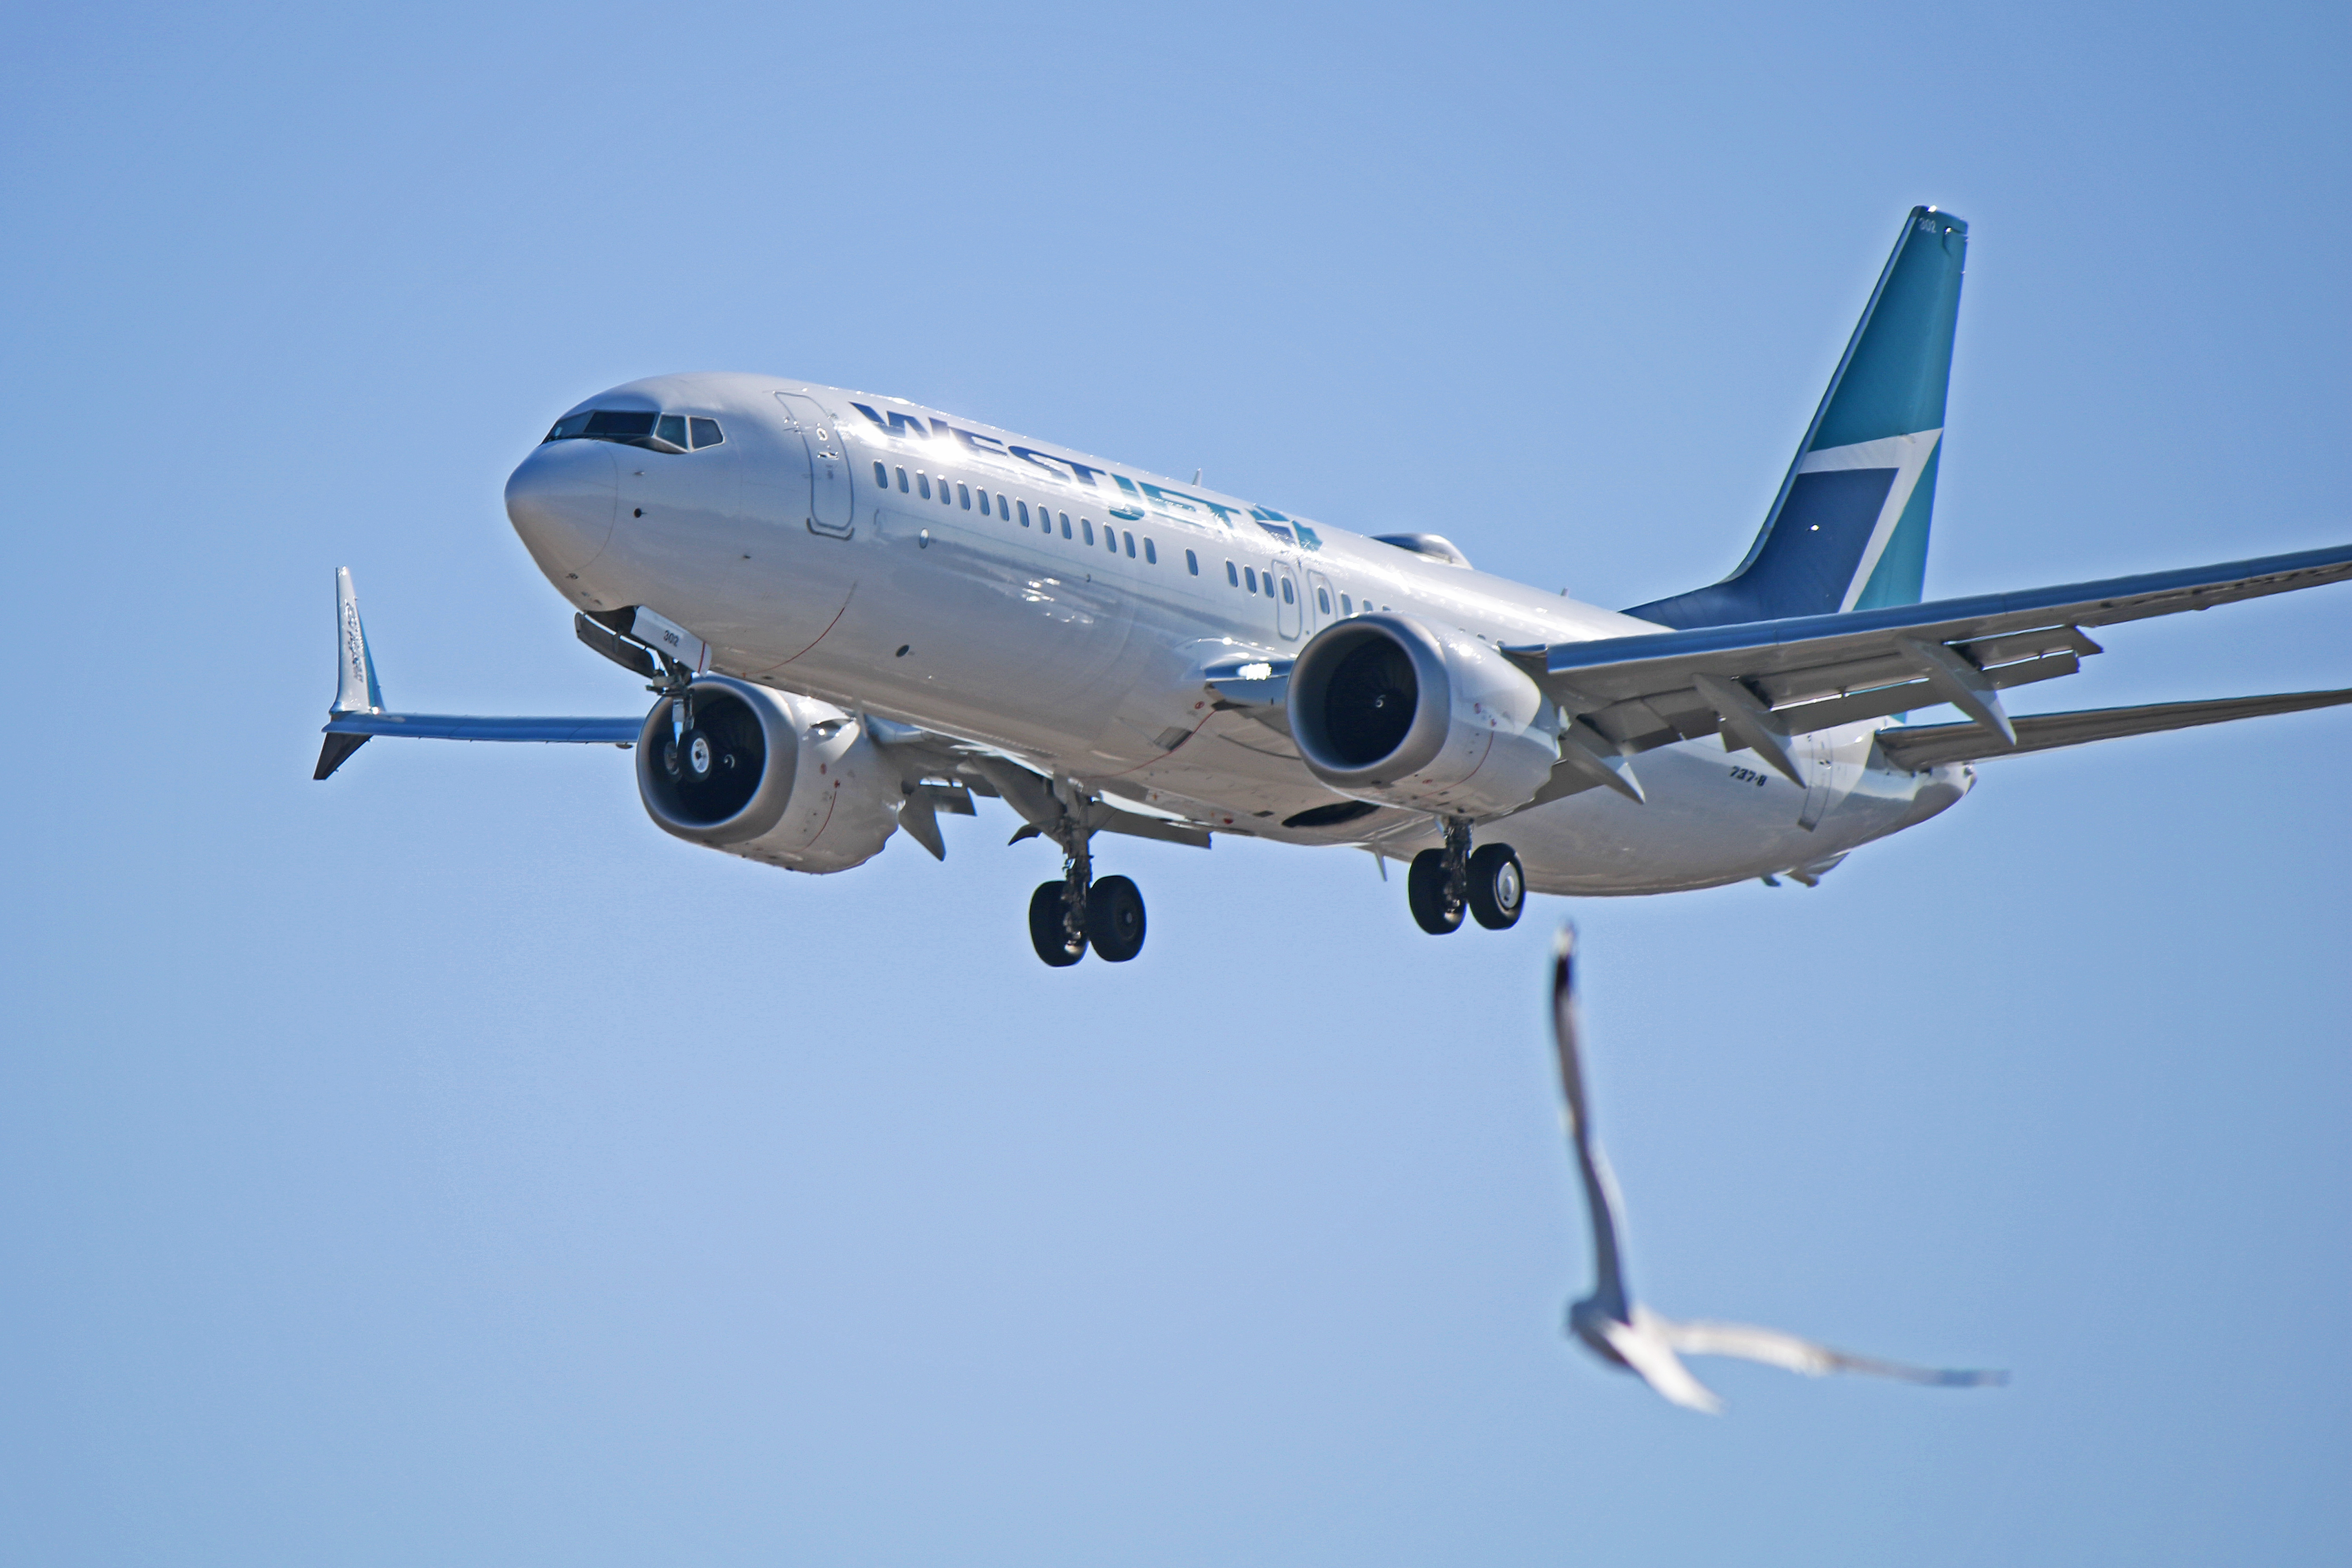 Boeing 737 800 Max: C-FNAX: WestJet Boeing 737 MAX 8 (The Reincarnation Of C-FNAX